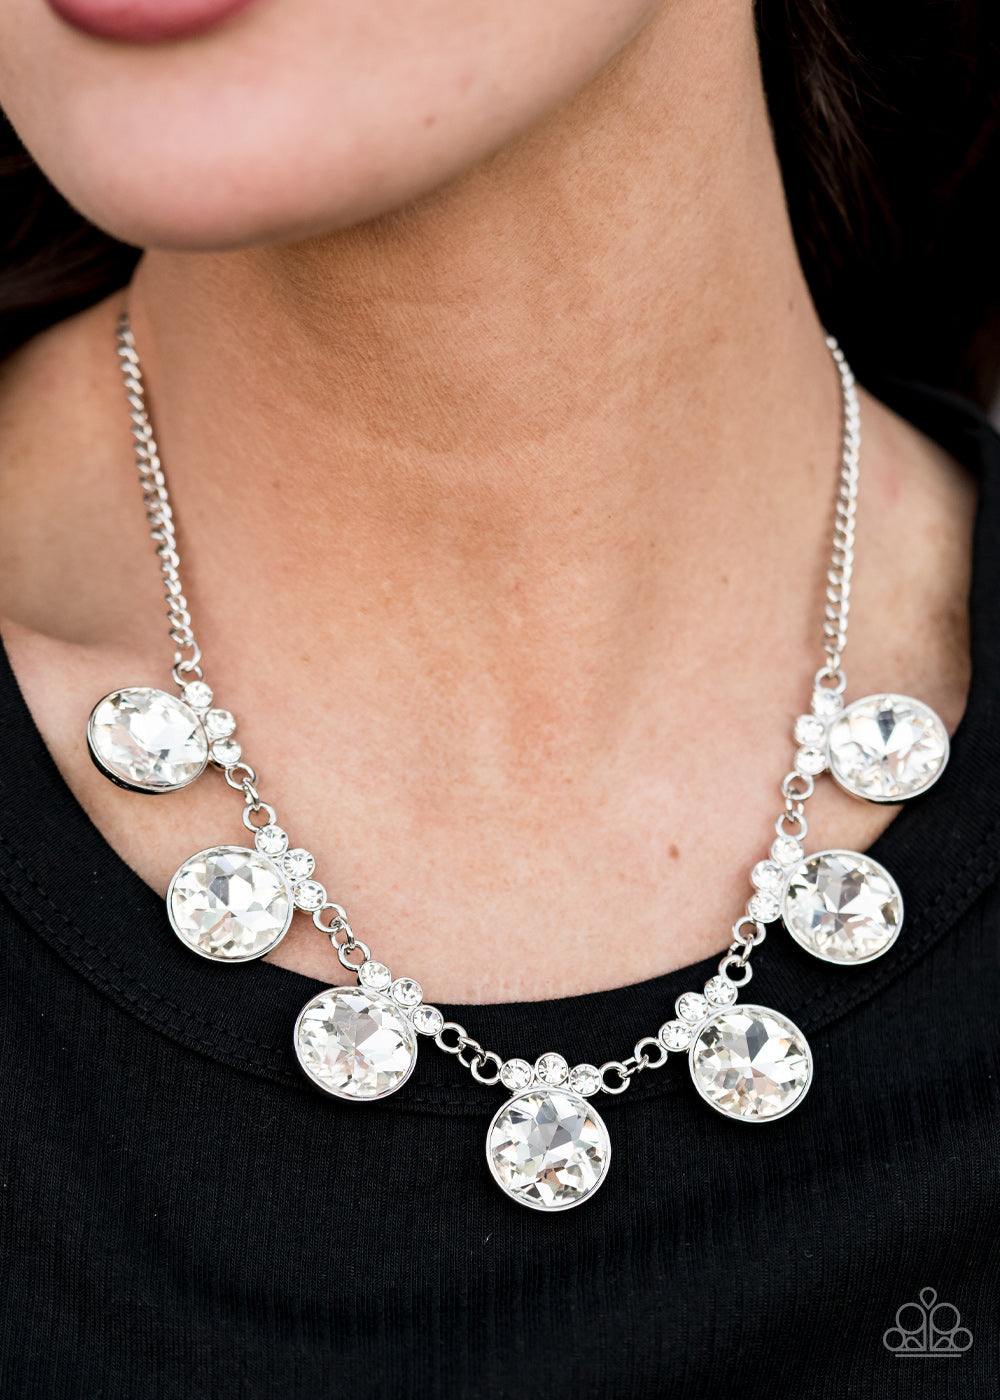 GLOW-Getter Glamour Paparazzi Necklace-White